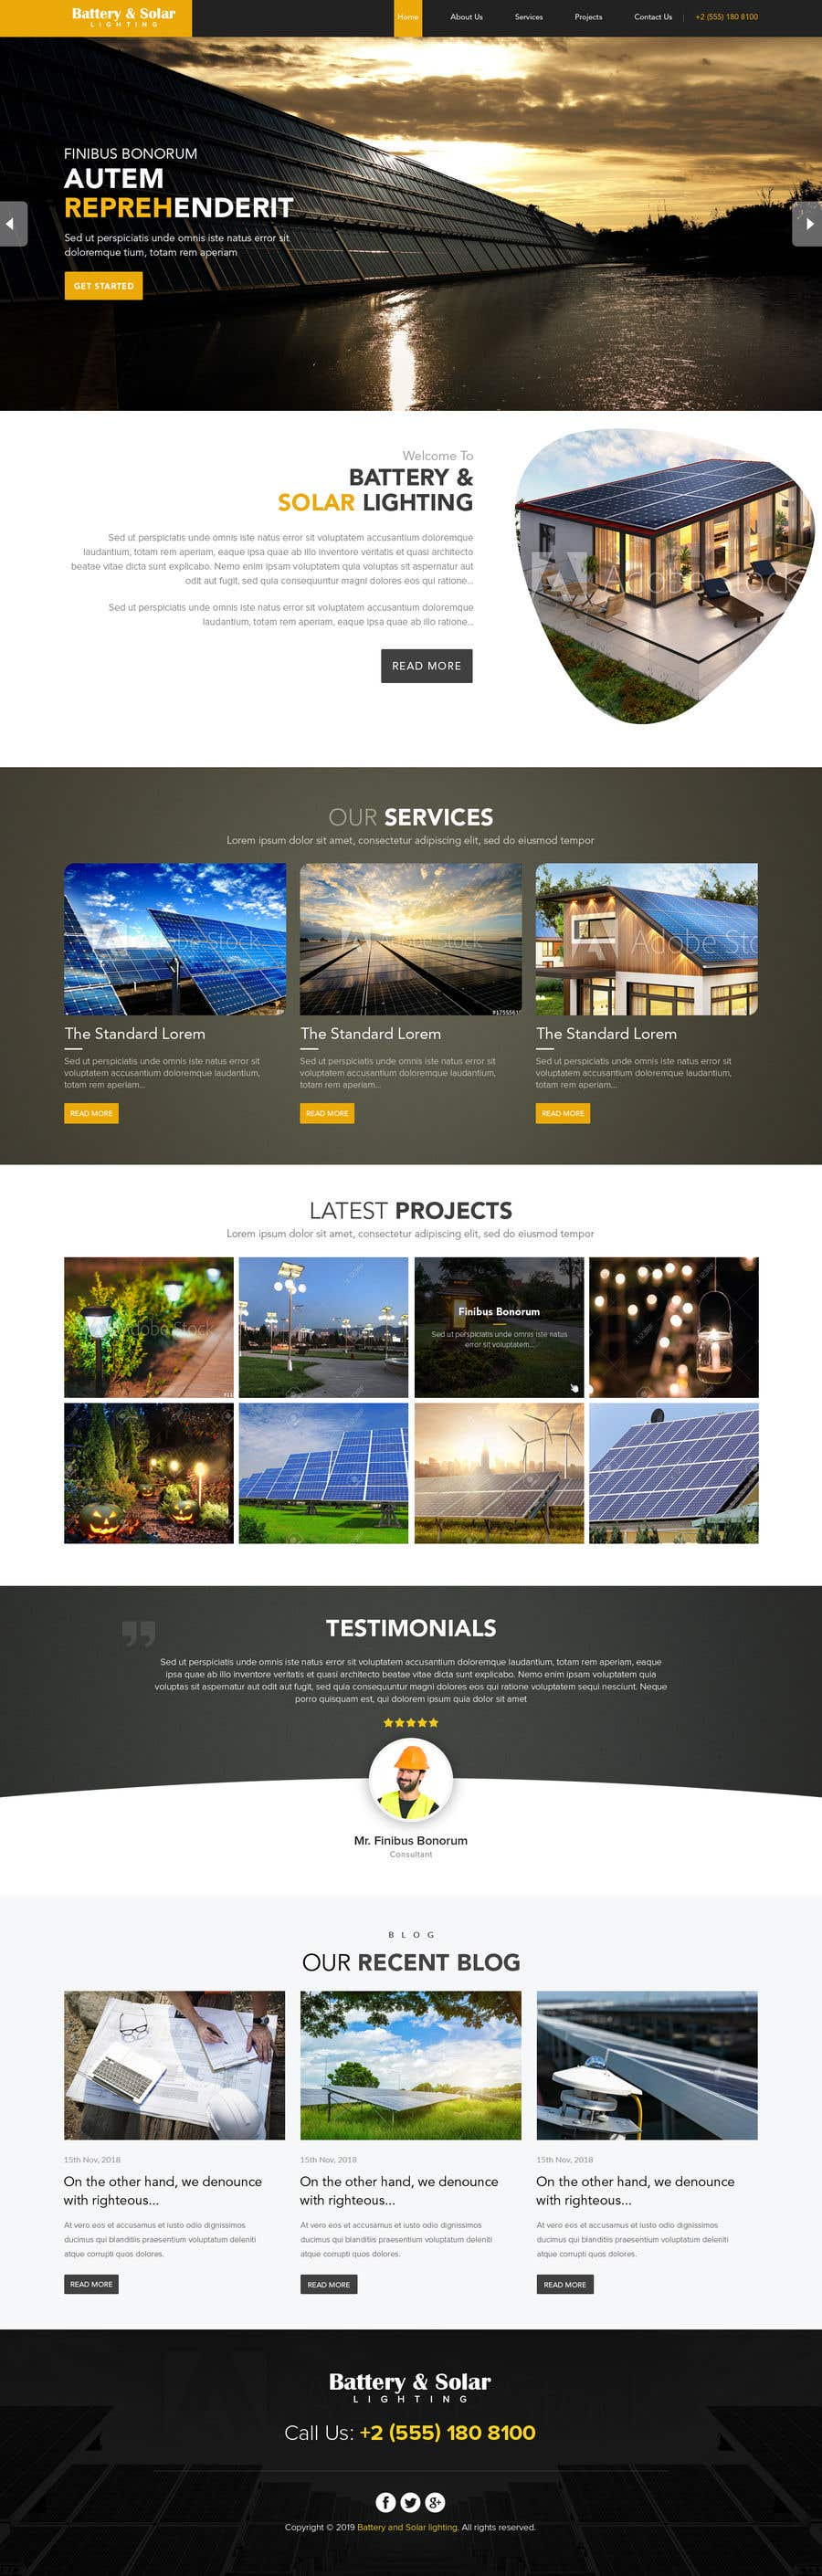 Penyertaan Peraduan #27 untuk wordpress theme design for battery and lighting subject